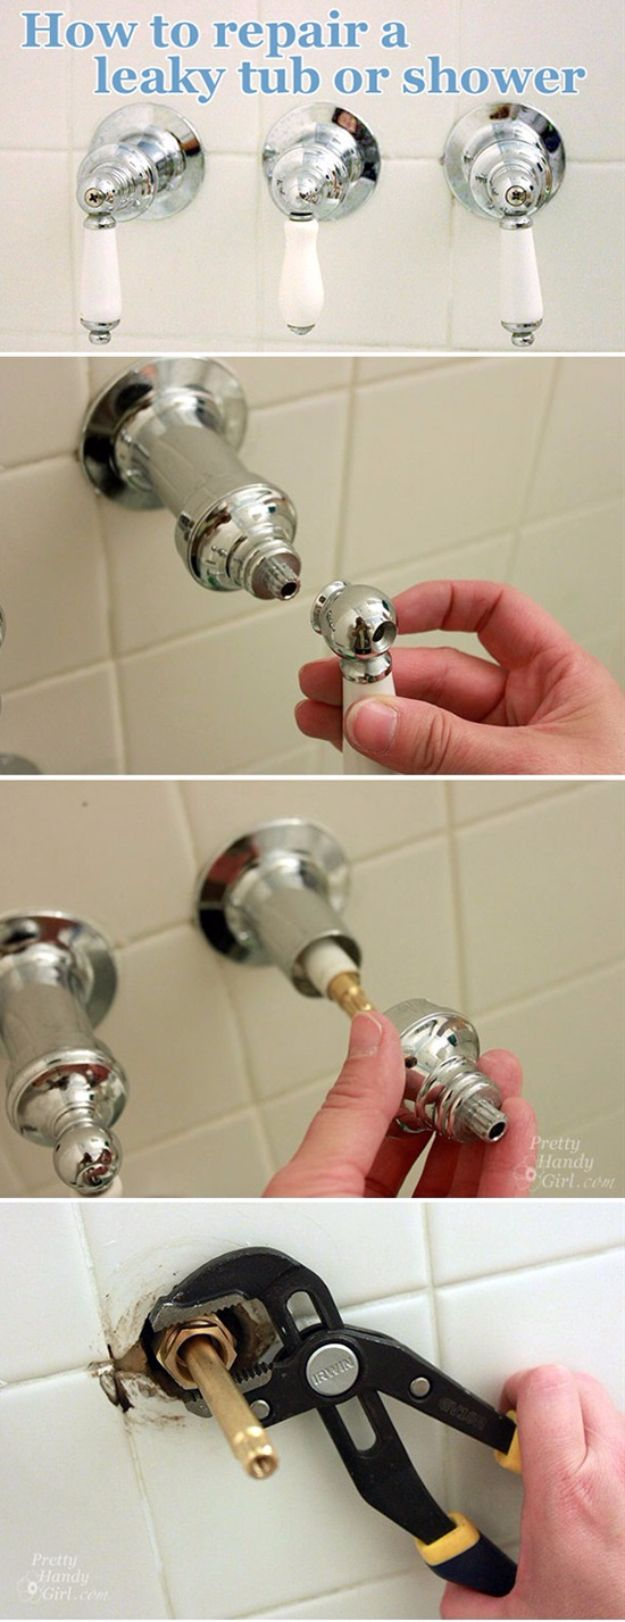 Easy Home Repair Hacks - Repair a Leaky Shower or Tub Faucet - Quick Ways to Easily Fix Broken Things Around The House - DIY Tricks for Home Improvement and Repairs - Simple Solutions for Kitchen, Bath, Garage and Yard - Caulk, Grout, Wall Repair and Wood Patching and Staining http://diyjoy.com/easy-home-repair-hacks